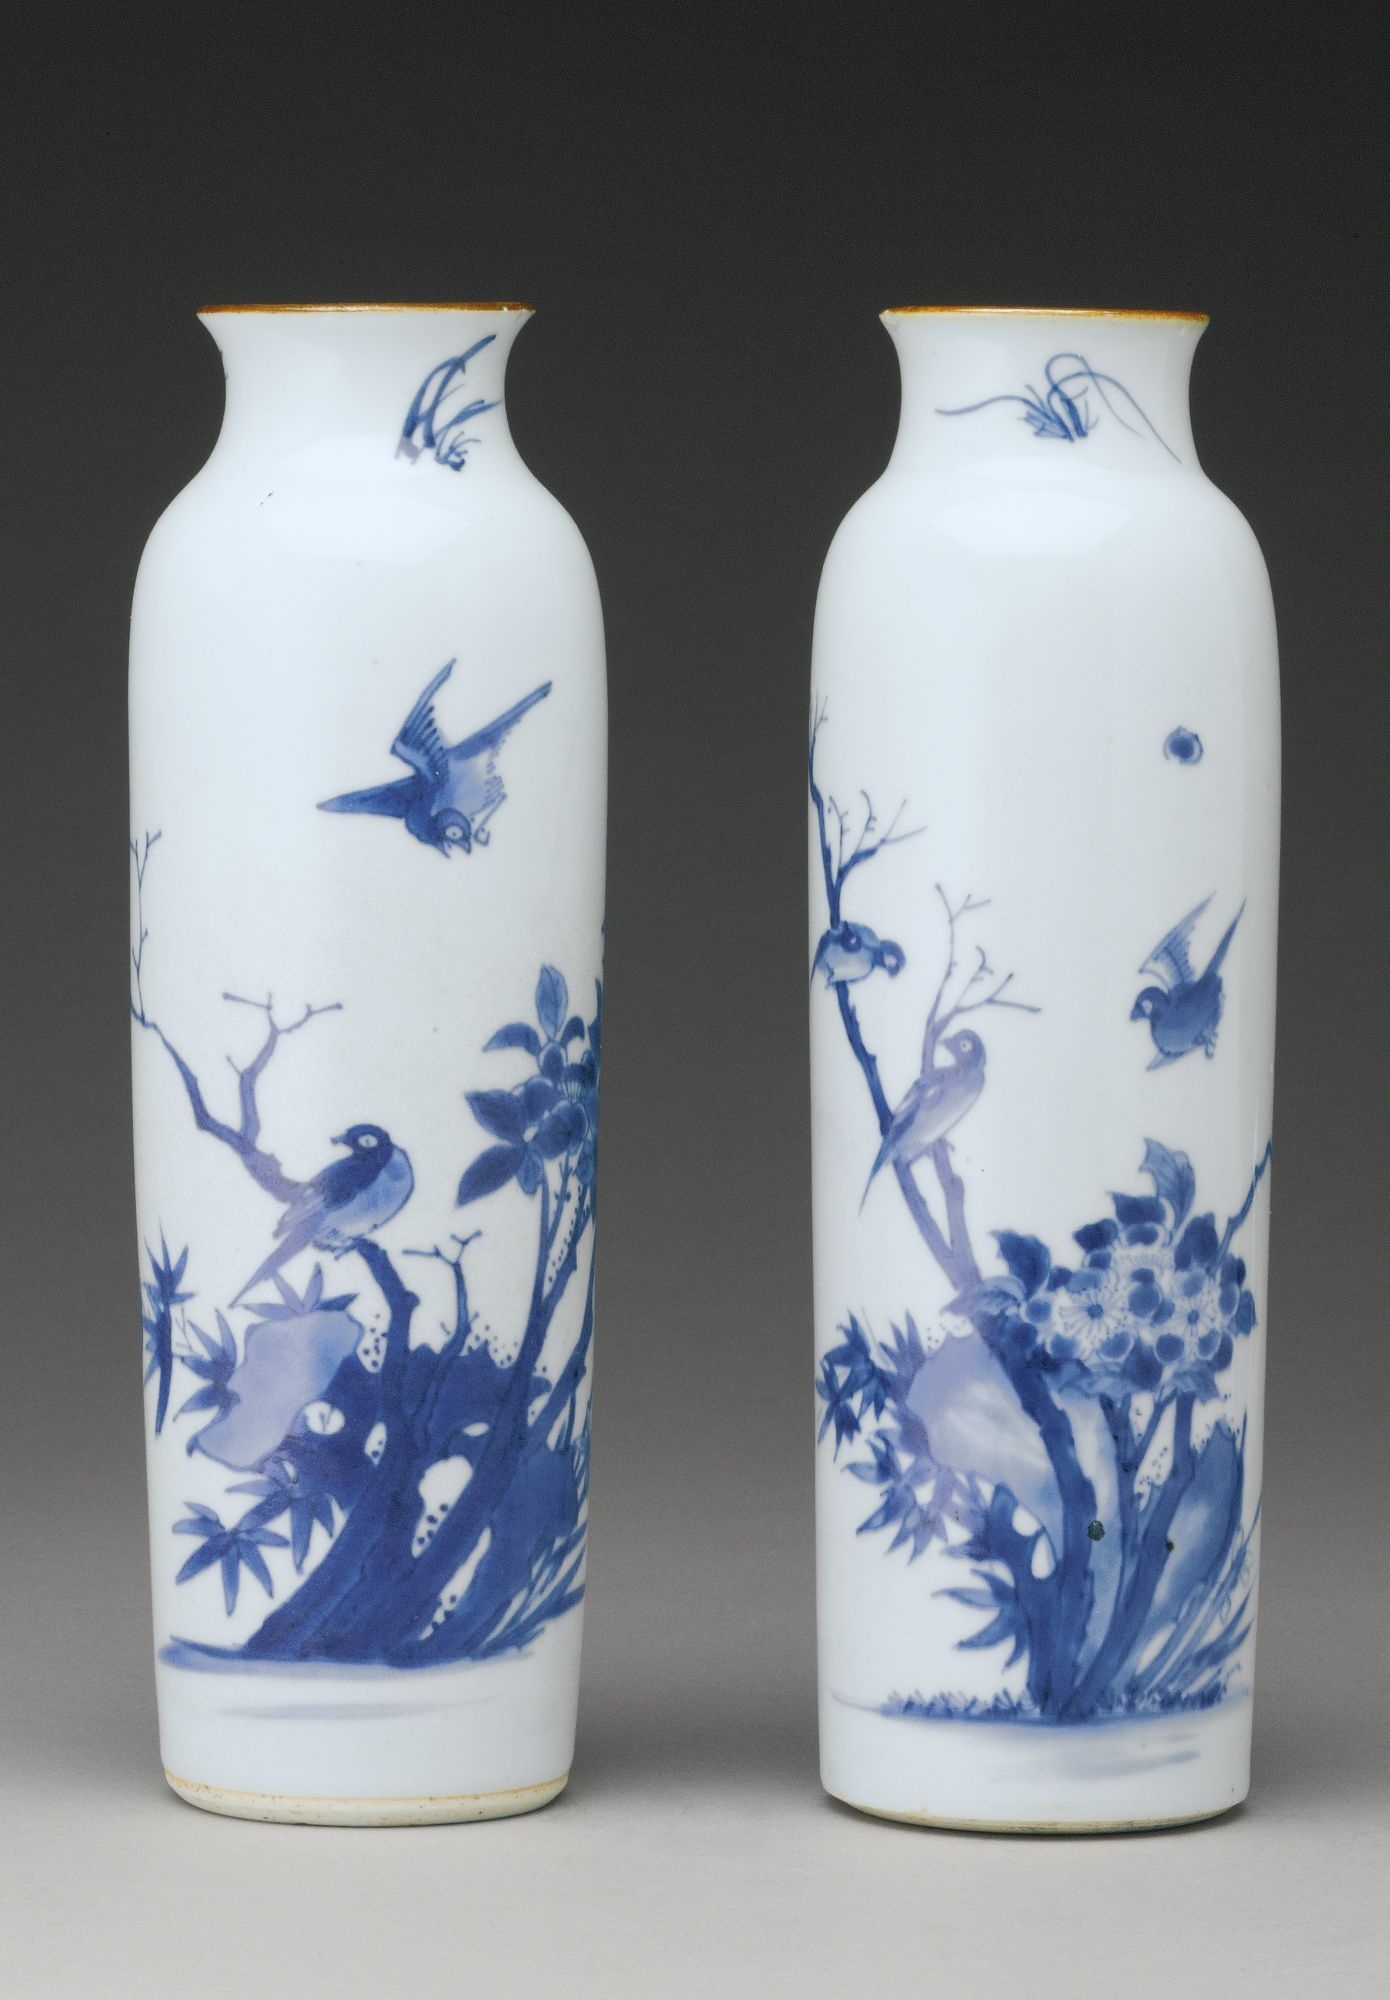 A pair of blue and white sleeve vases transitional period 17th a pair of blue and white sleeve vases transitional period 17th century reviewsmspy